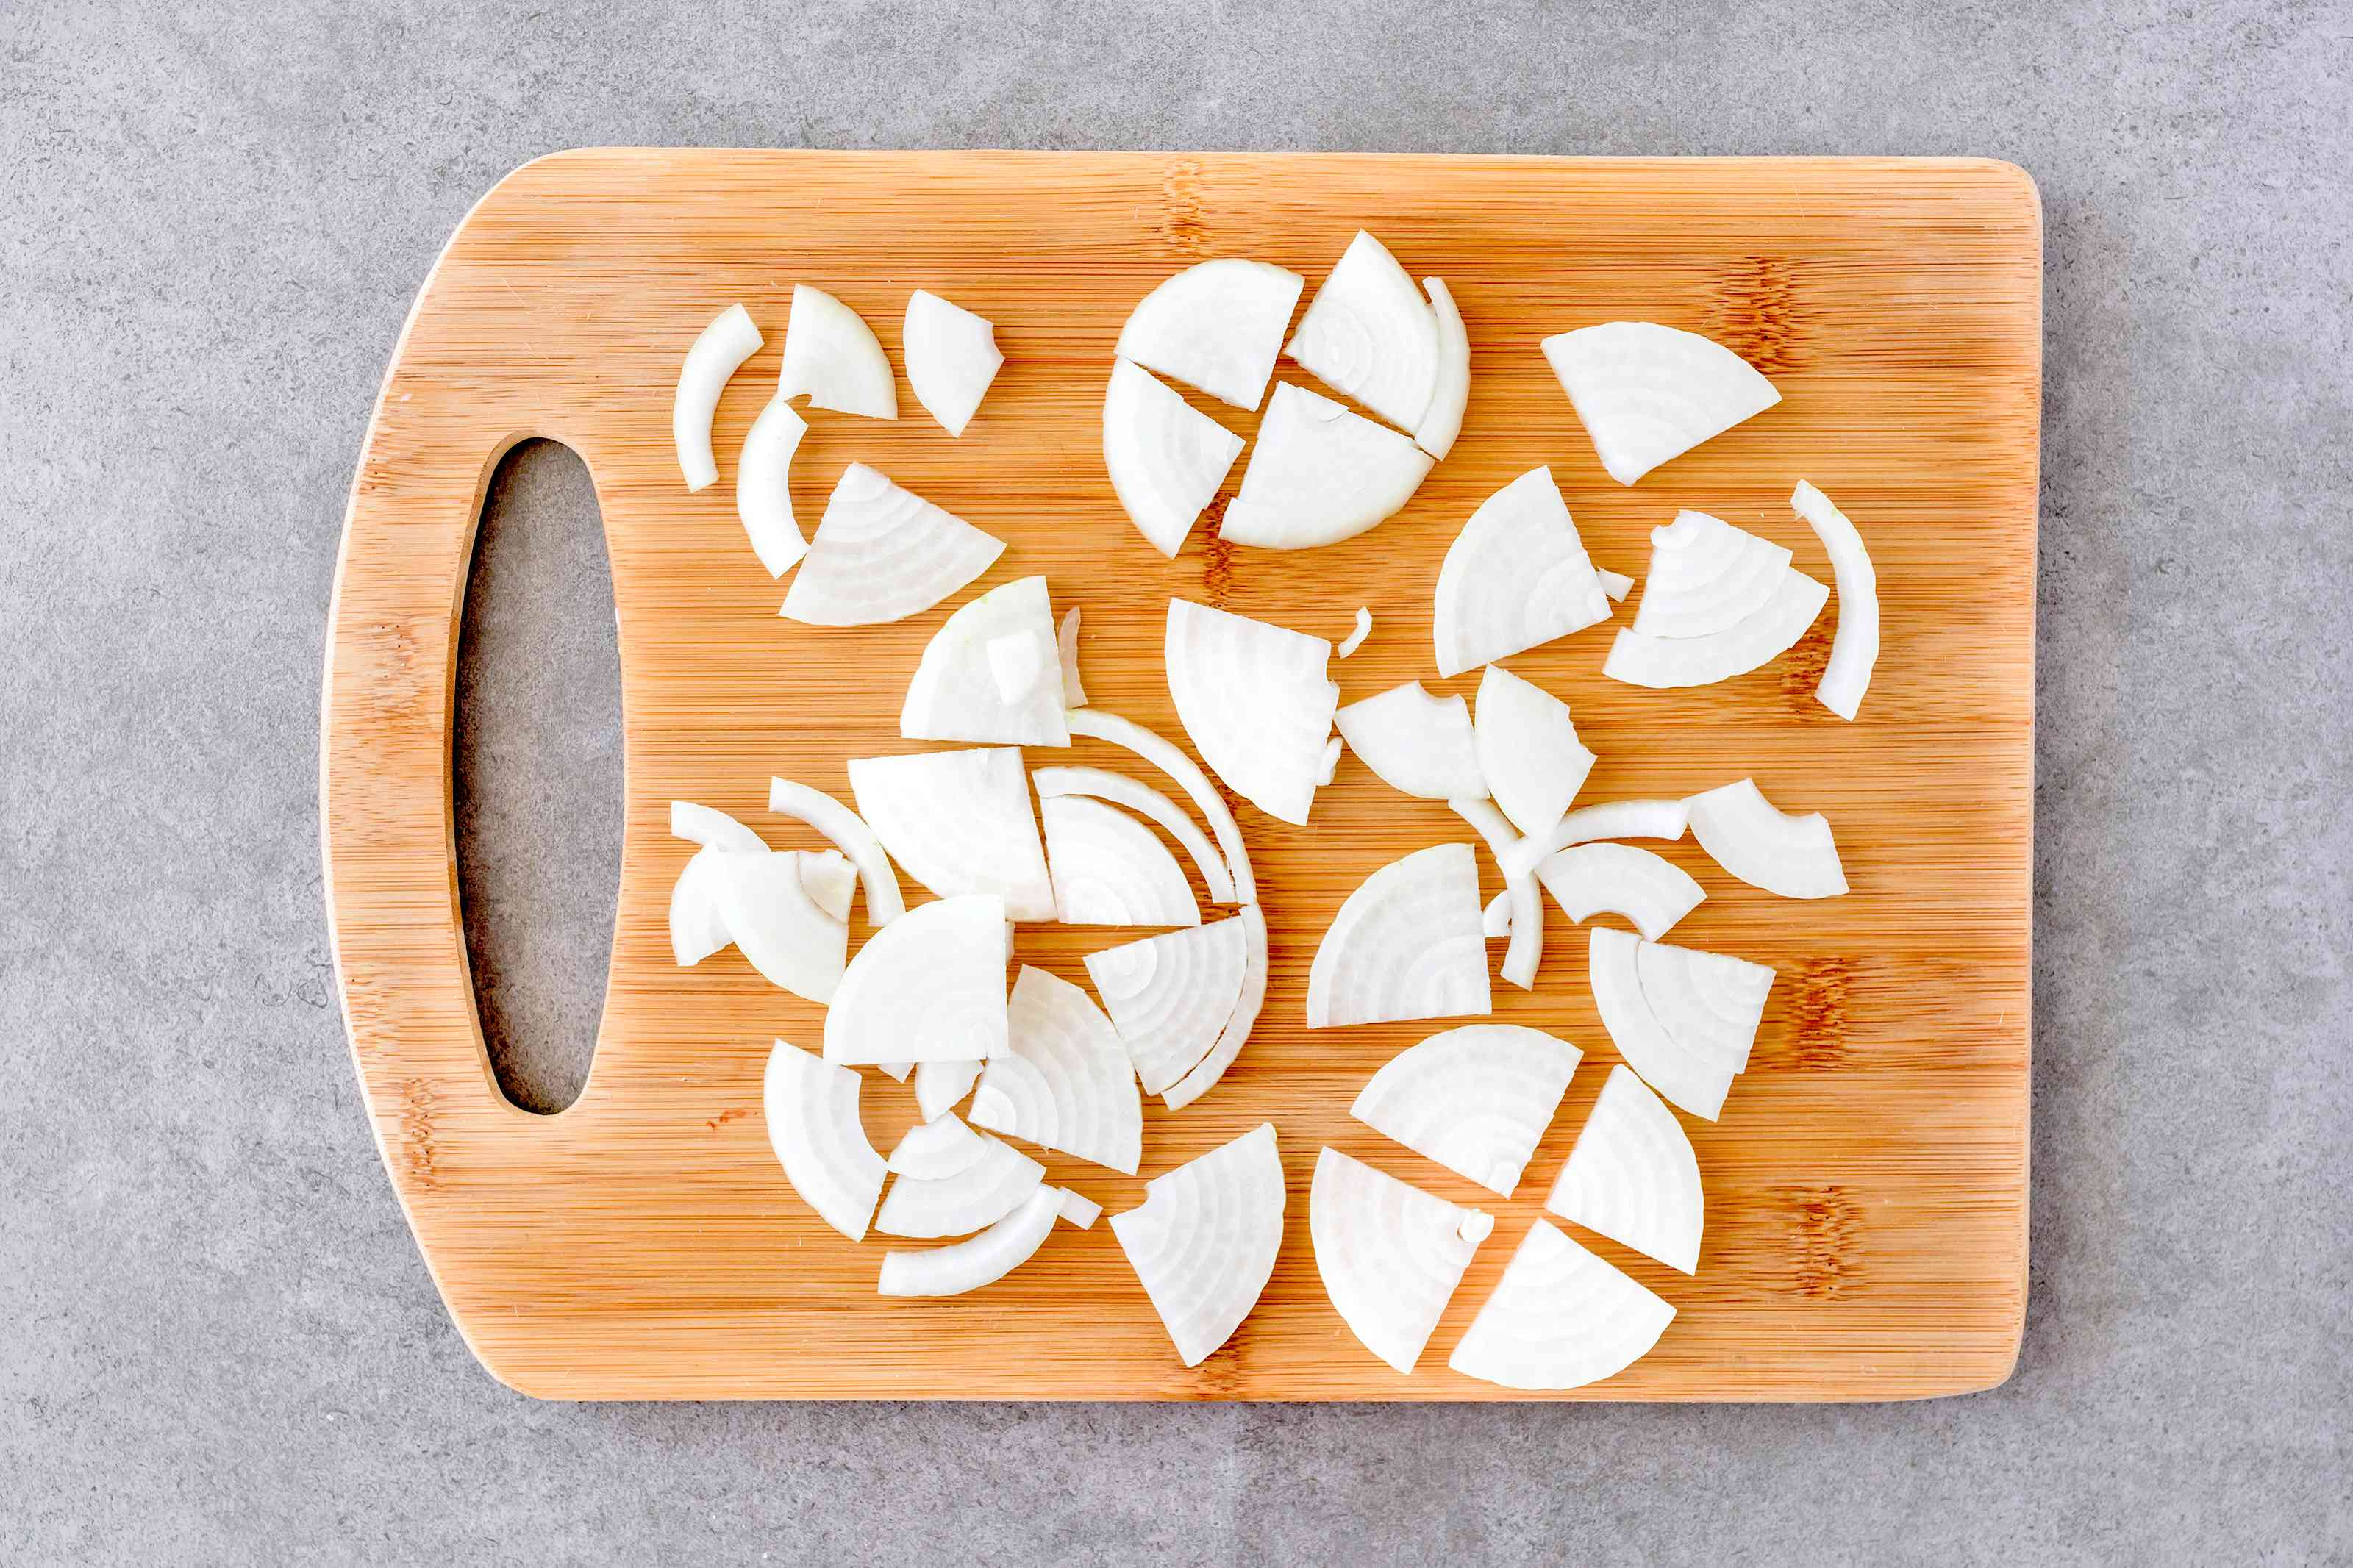 Cut round onion slices in half and then half again